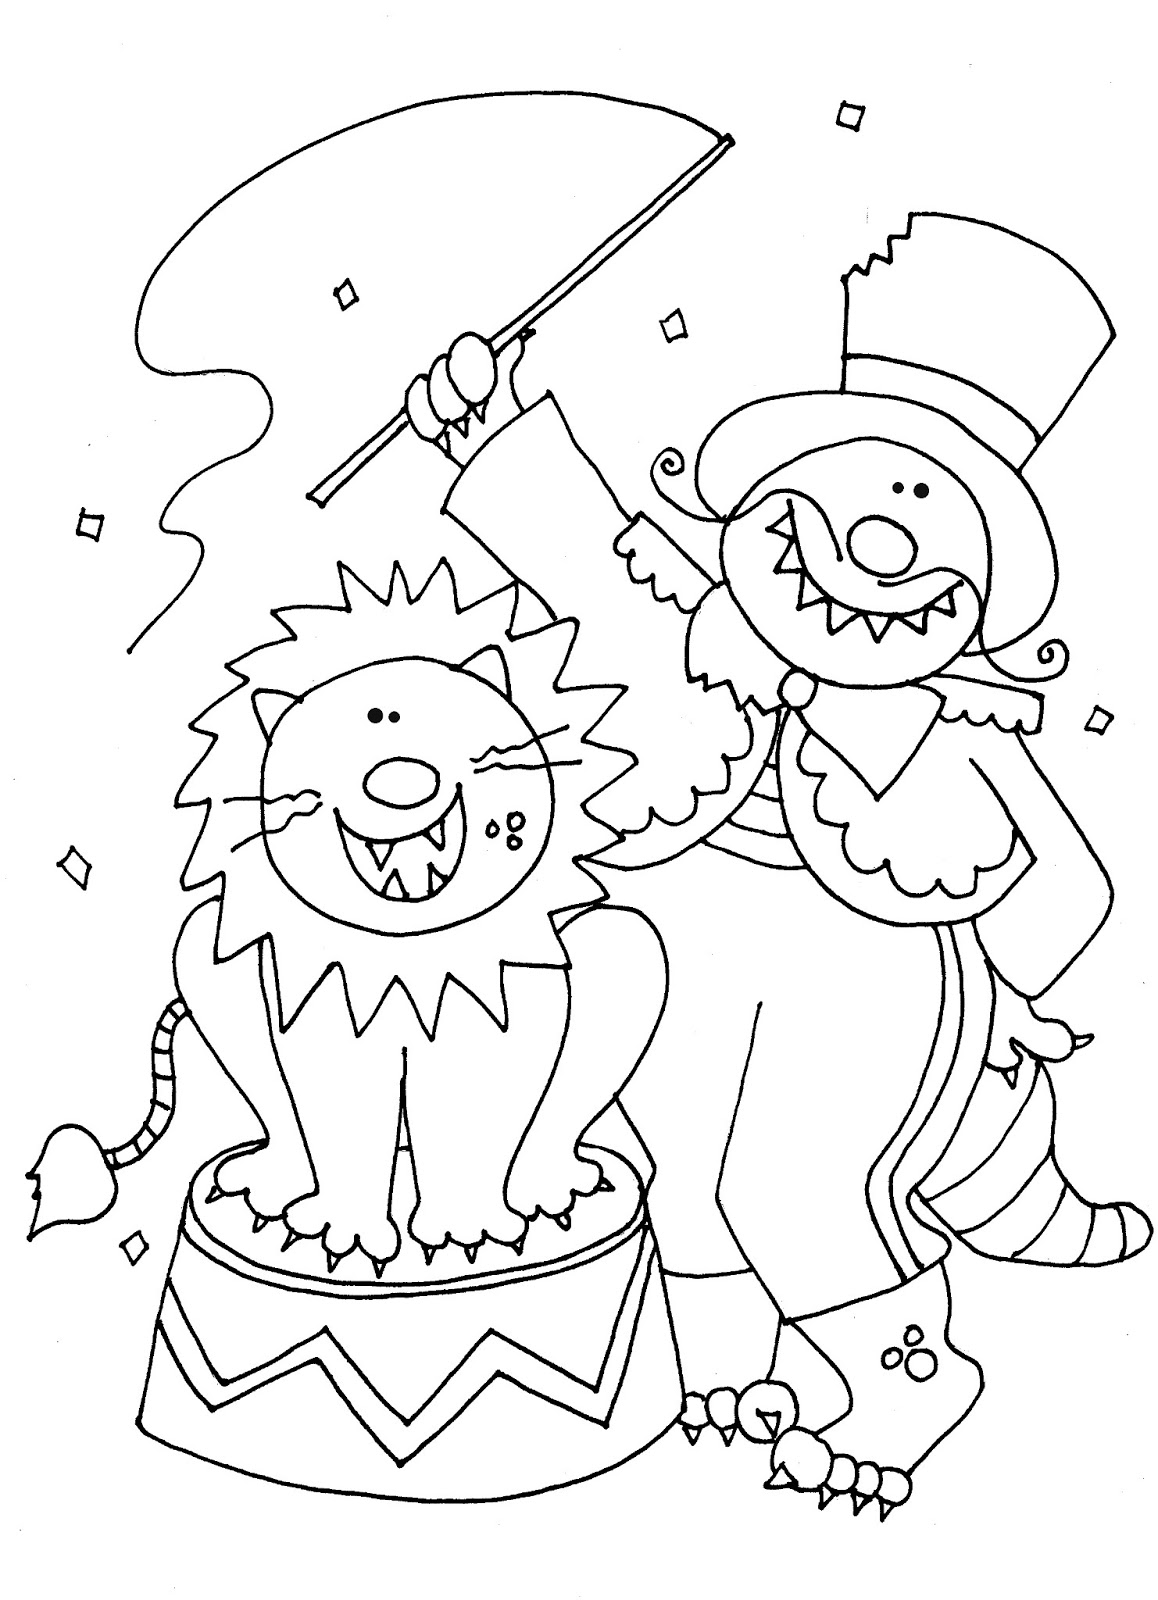 coloring pages circus train - photo#20